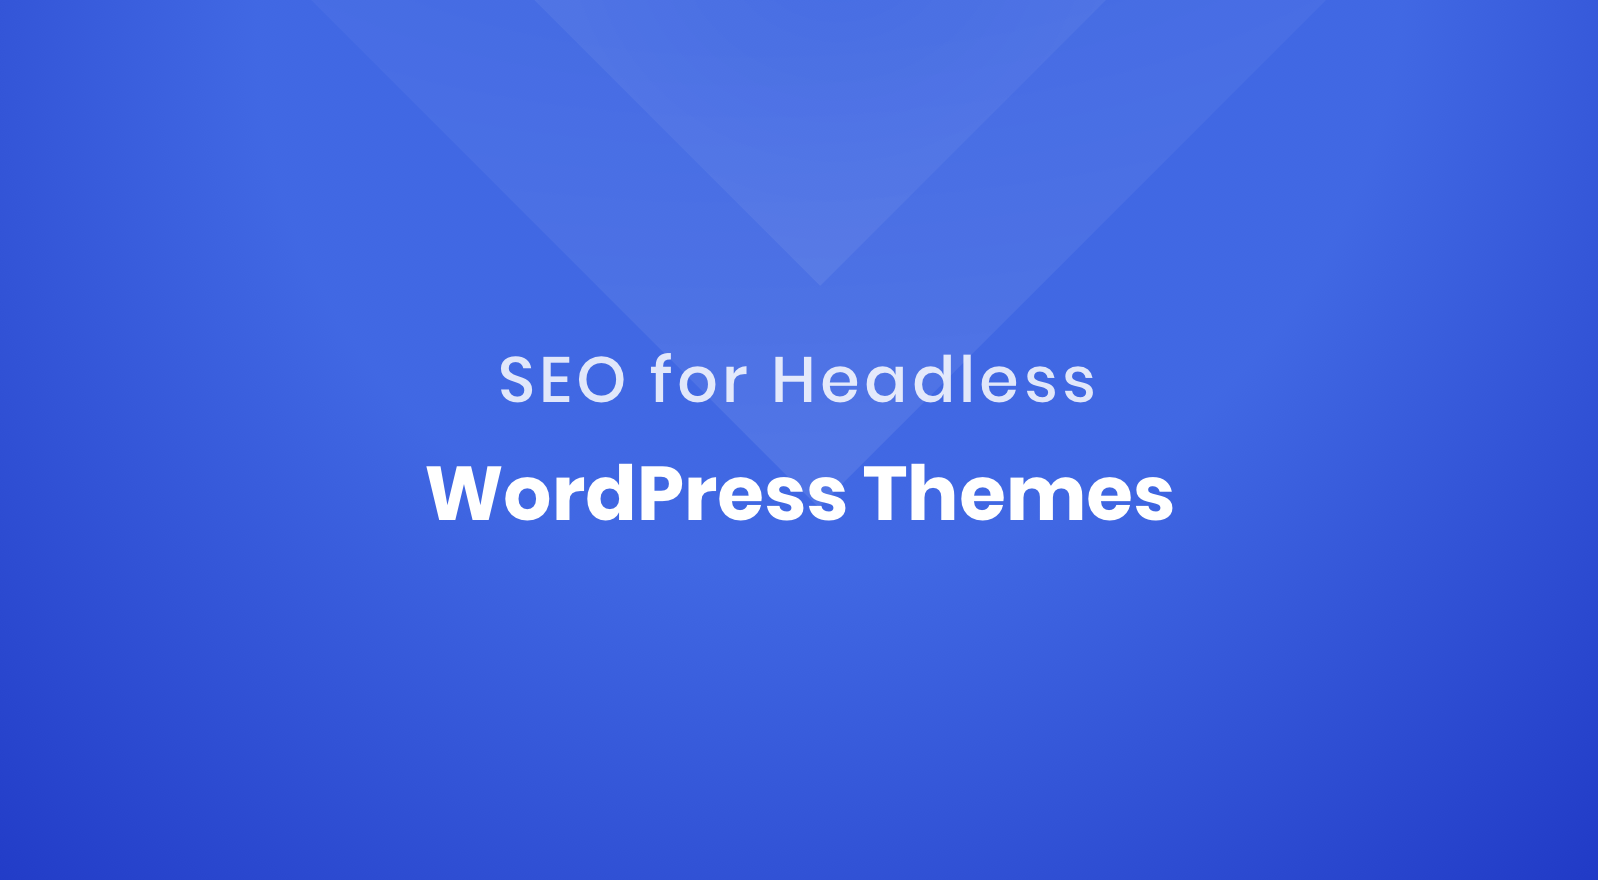 seo-for-headless-wordpress-themes-featured-image